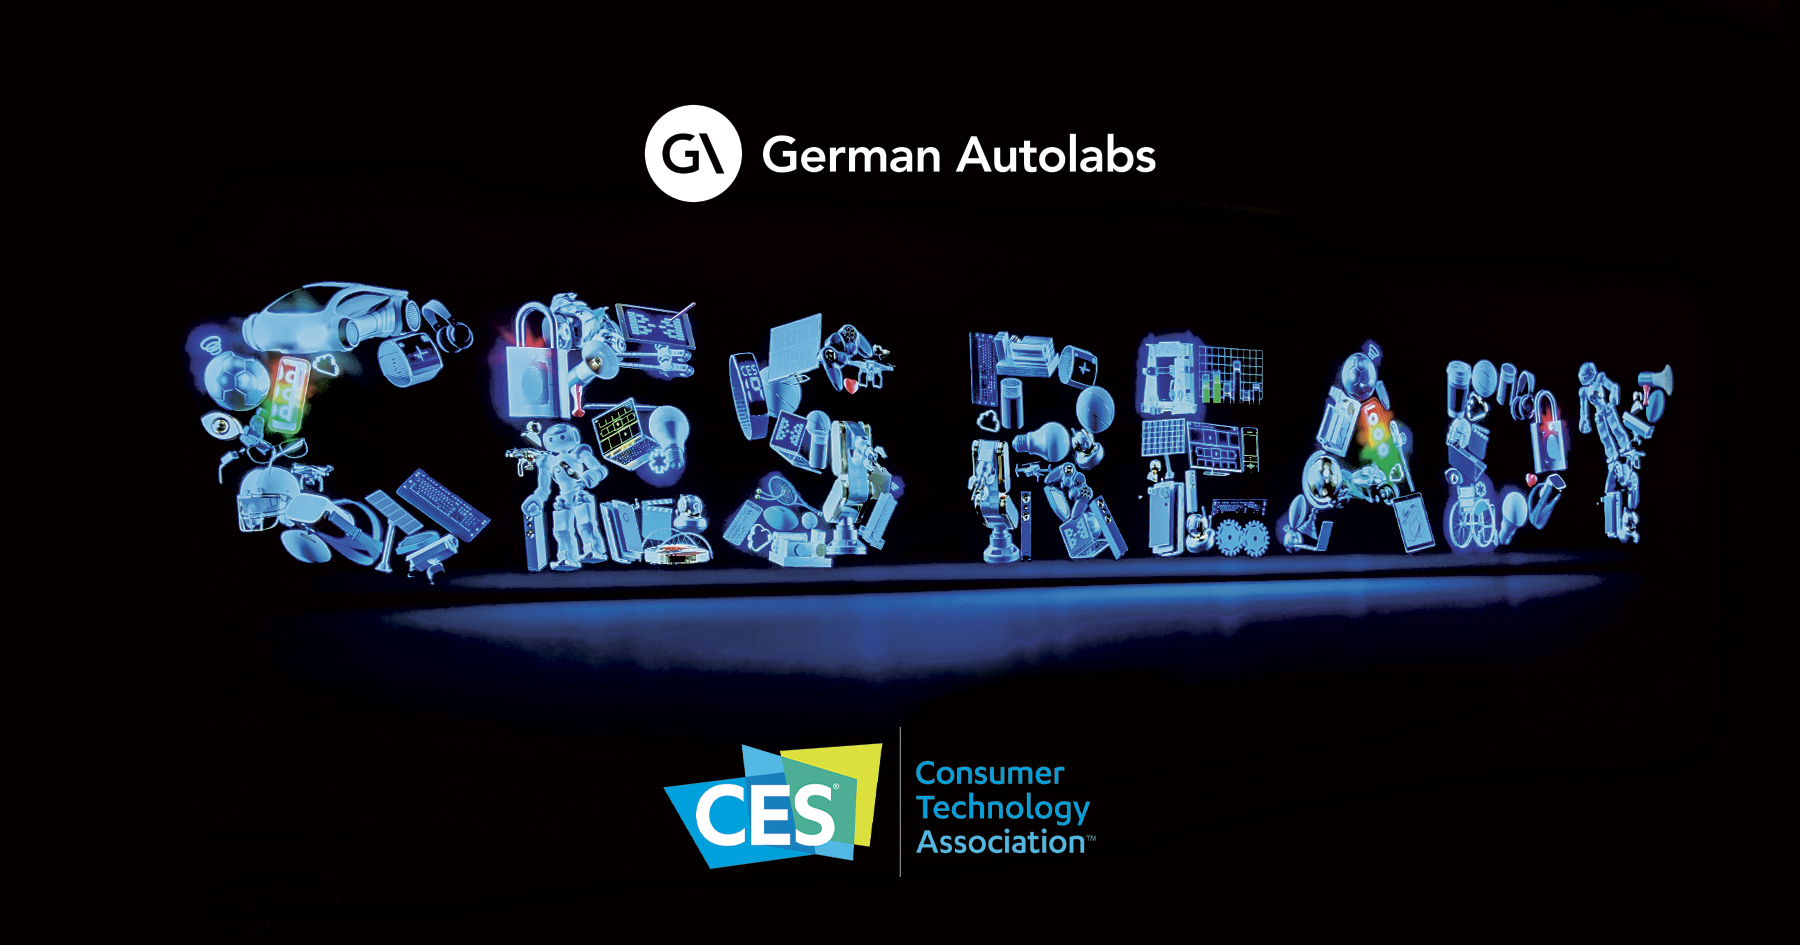 German Autolabs at CES 2019 in Las Vegas